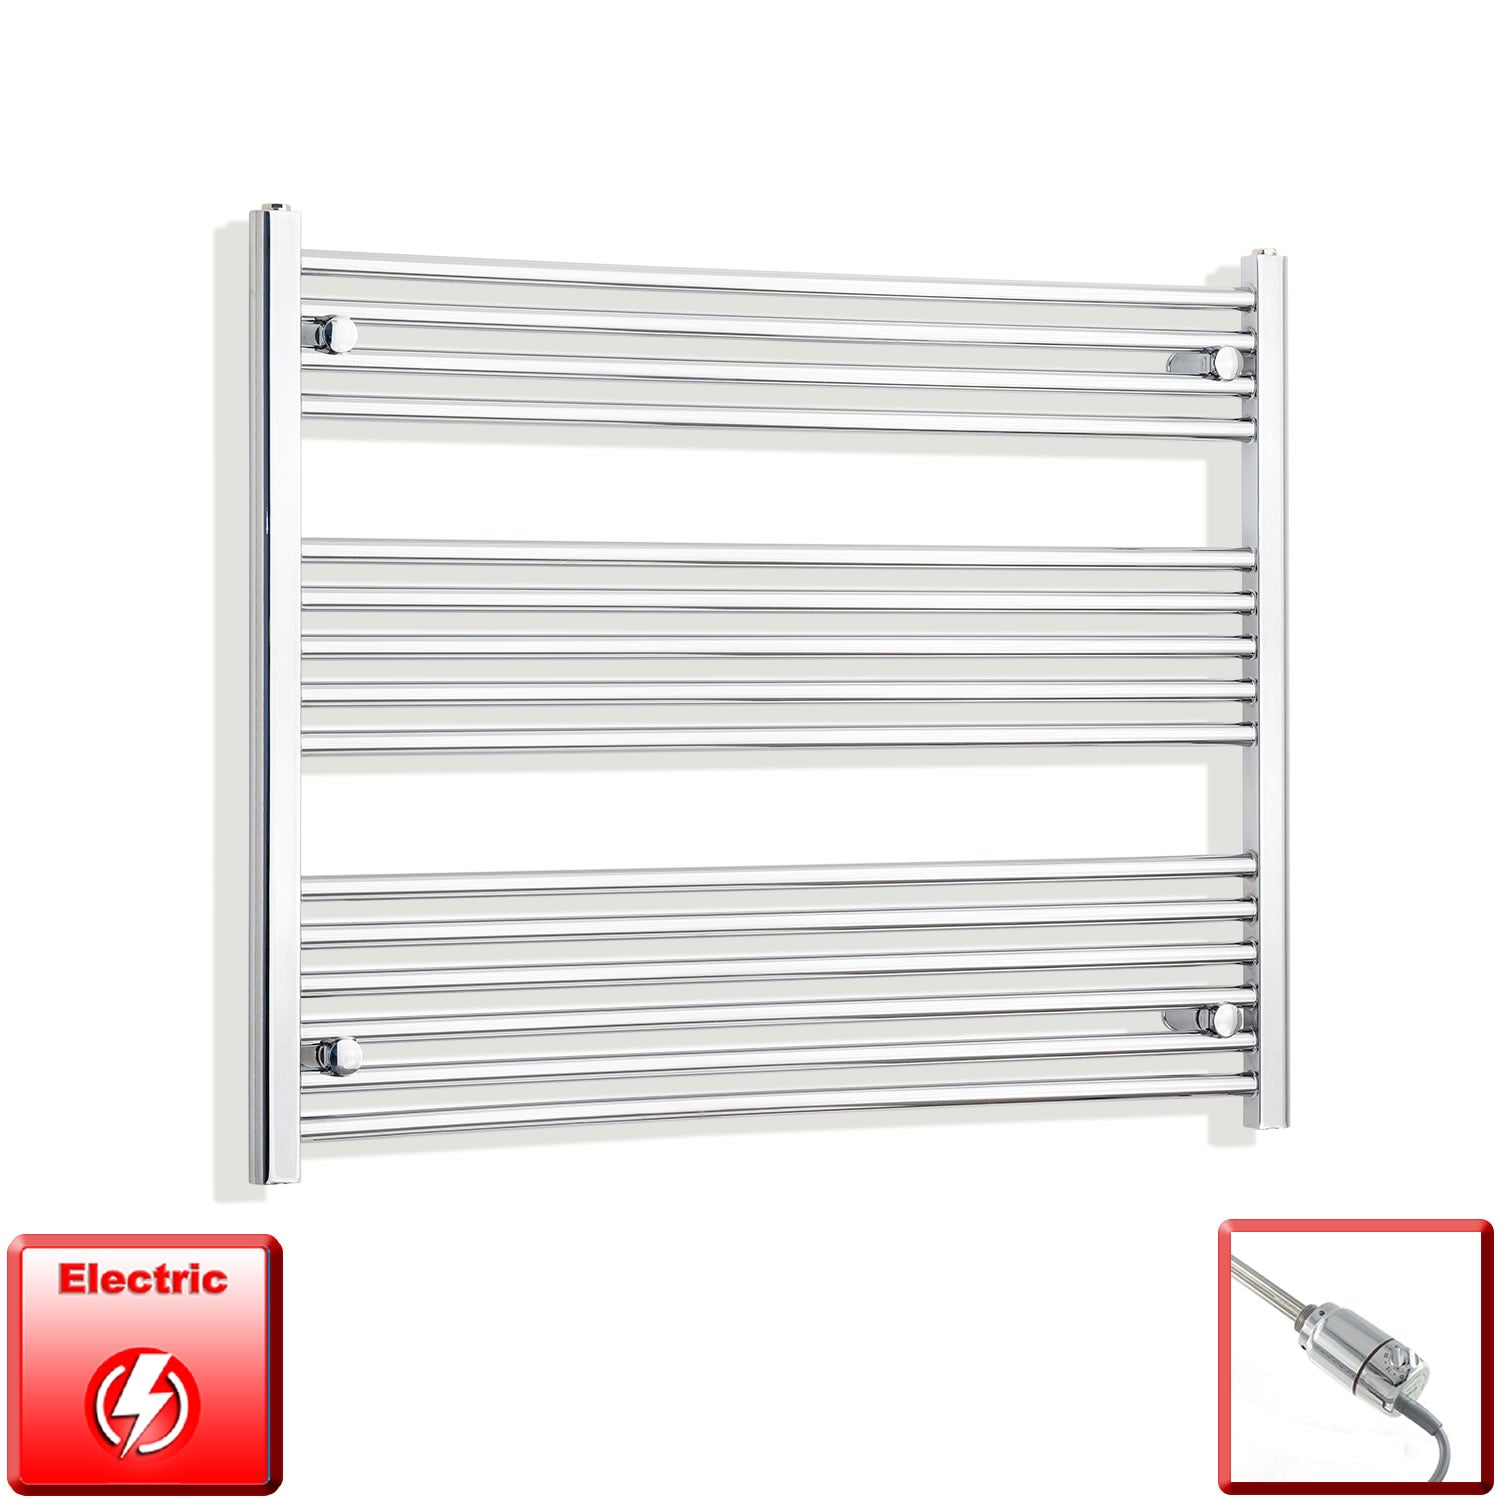 1000mm Wide 800mm High Pre-Filled Chrome Electric Towel Rail Radiator With Thermostatic GT Element